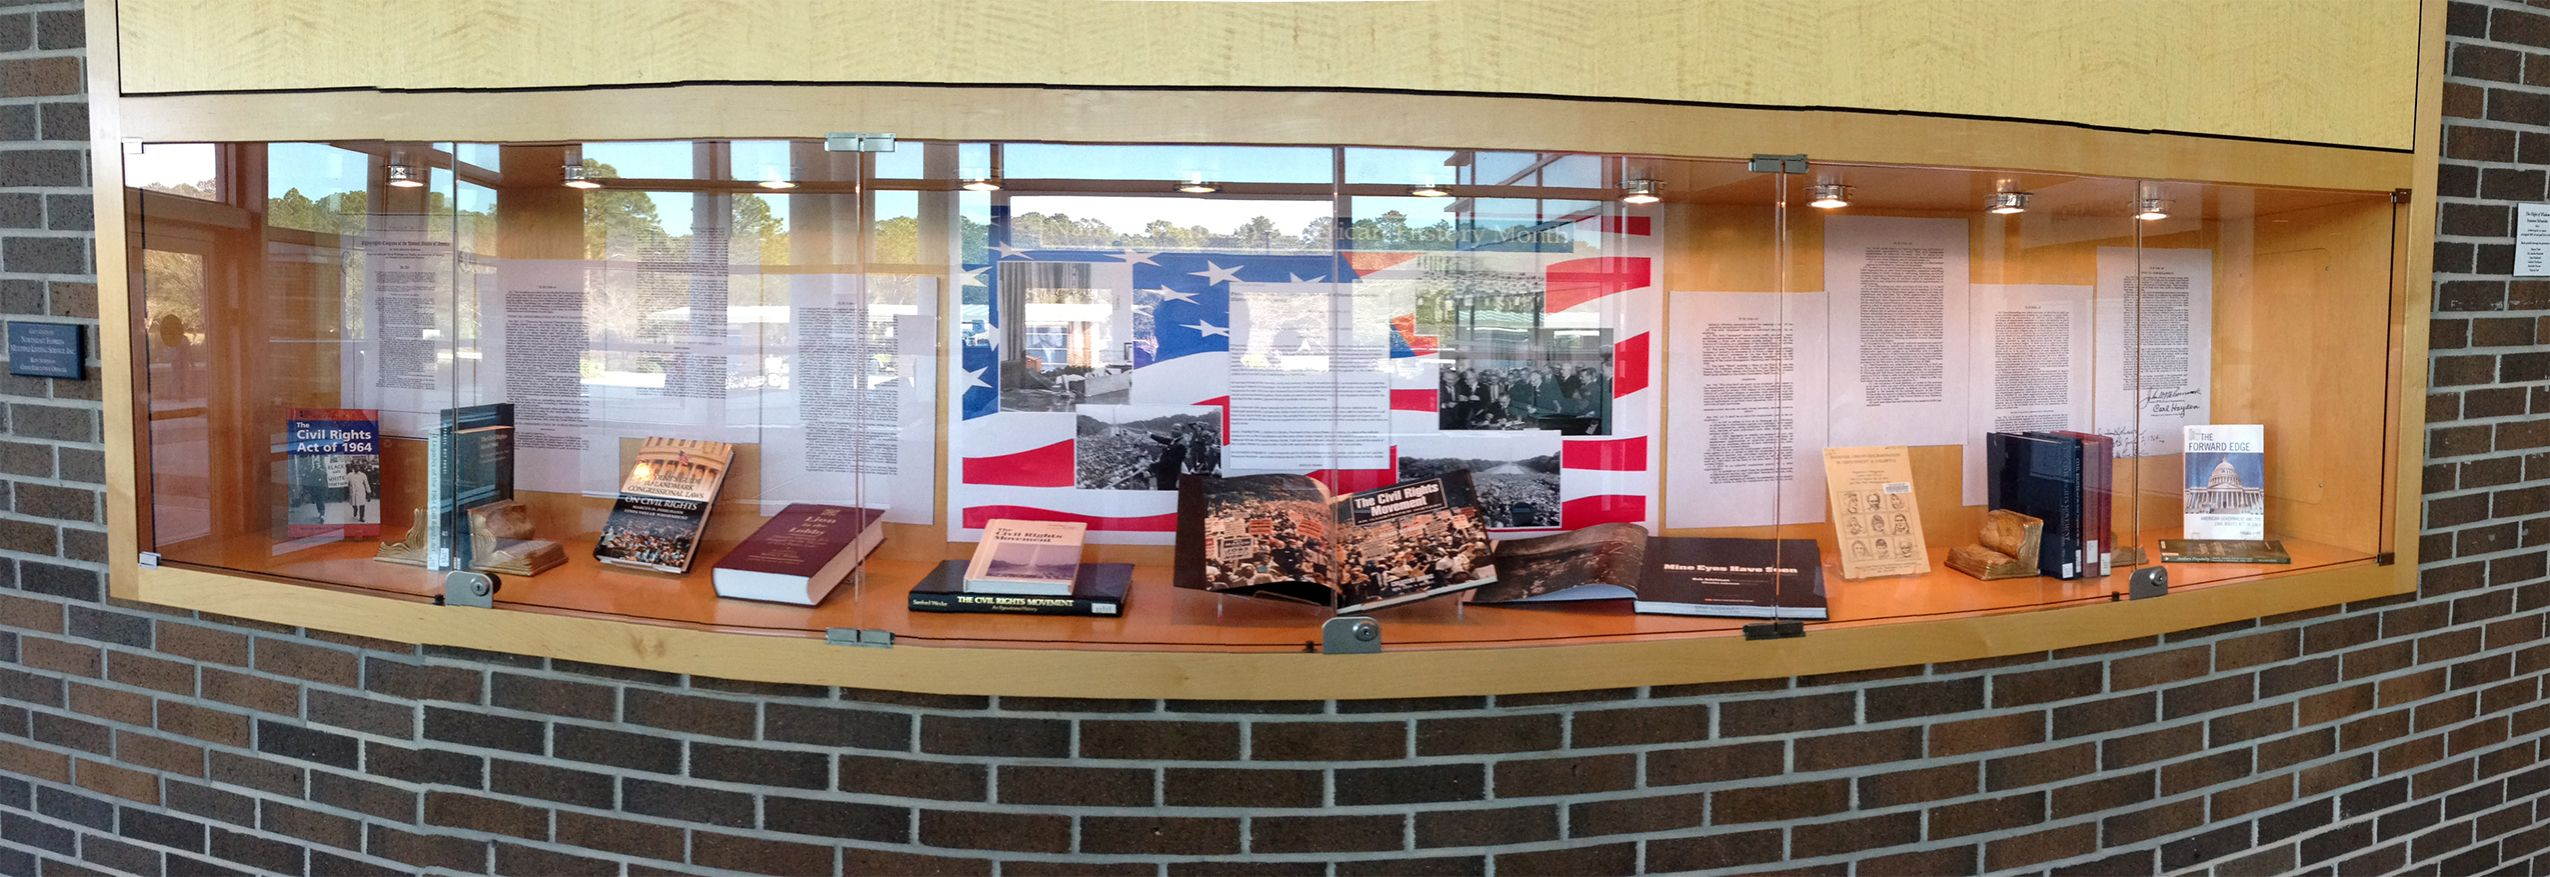 Unf Library Exhibit National African American History Month